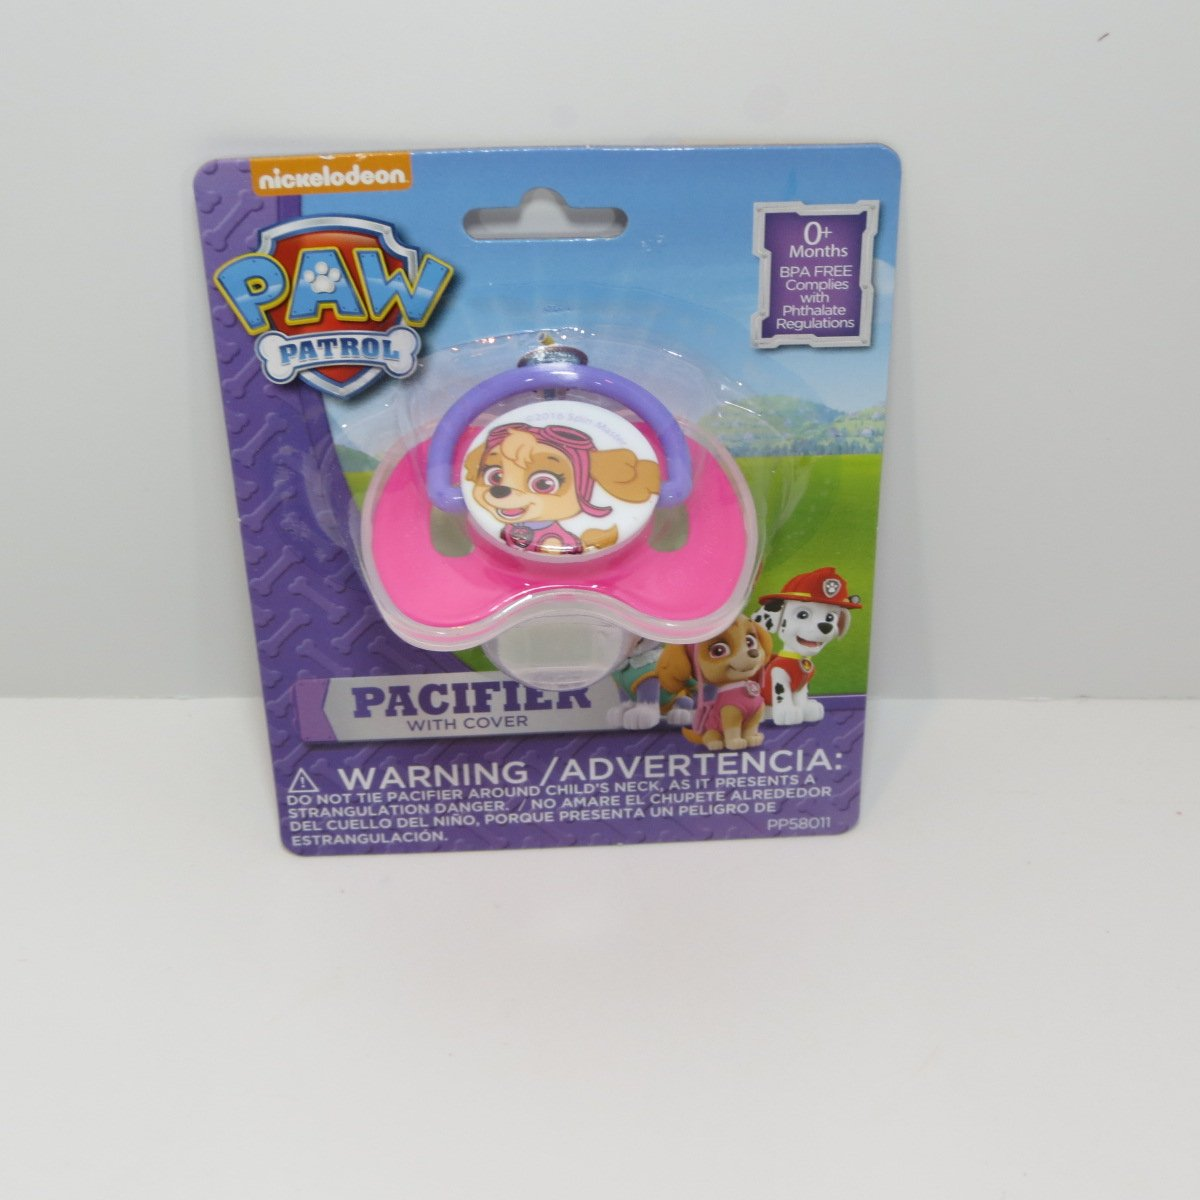 Paw Patrol Baby Pacifier with Cover - Bundle of 2 - One Everest and One Skye Pacifier